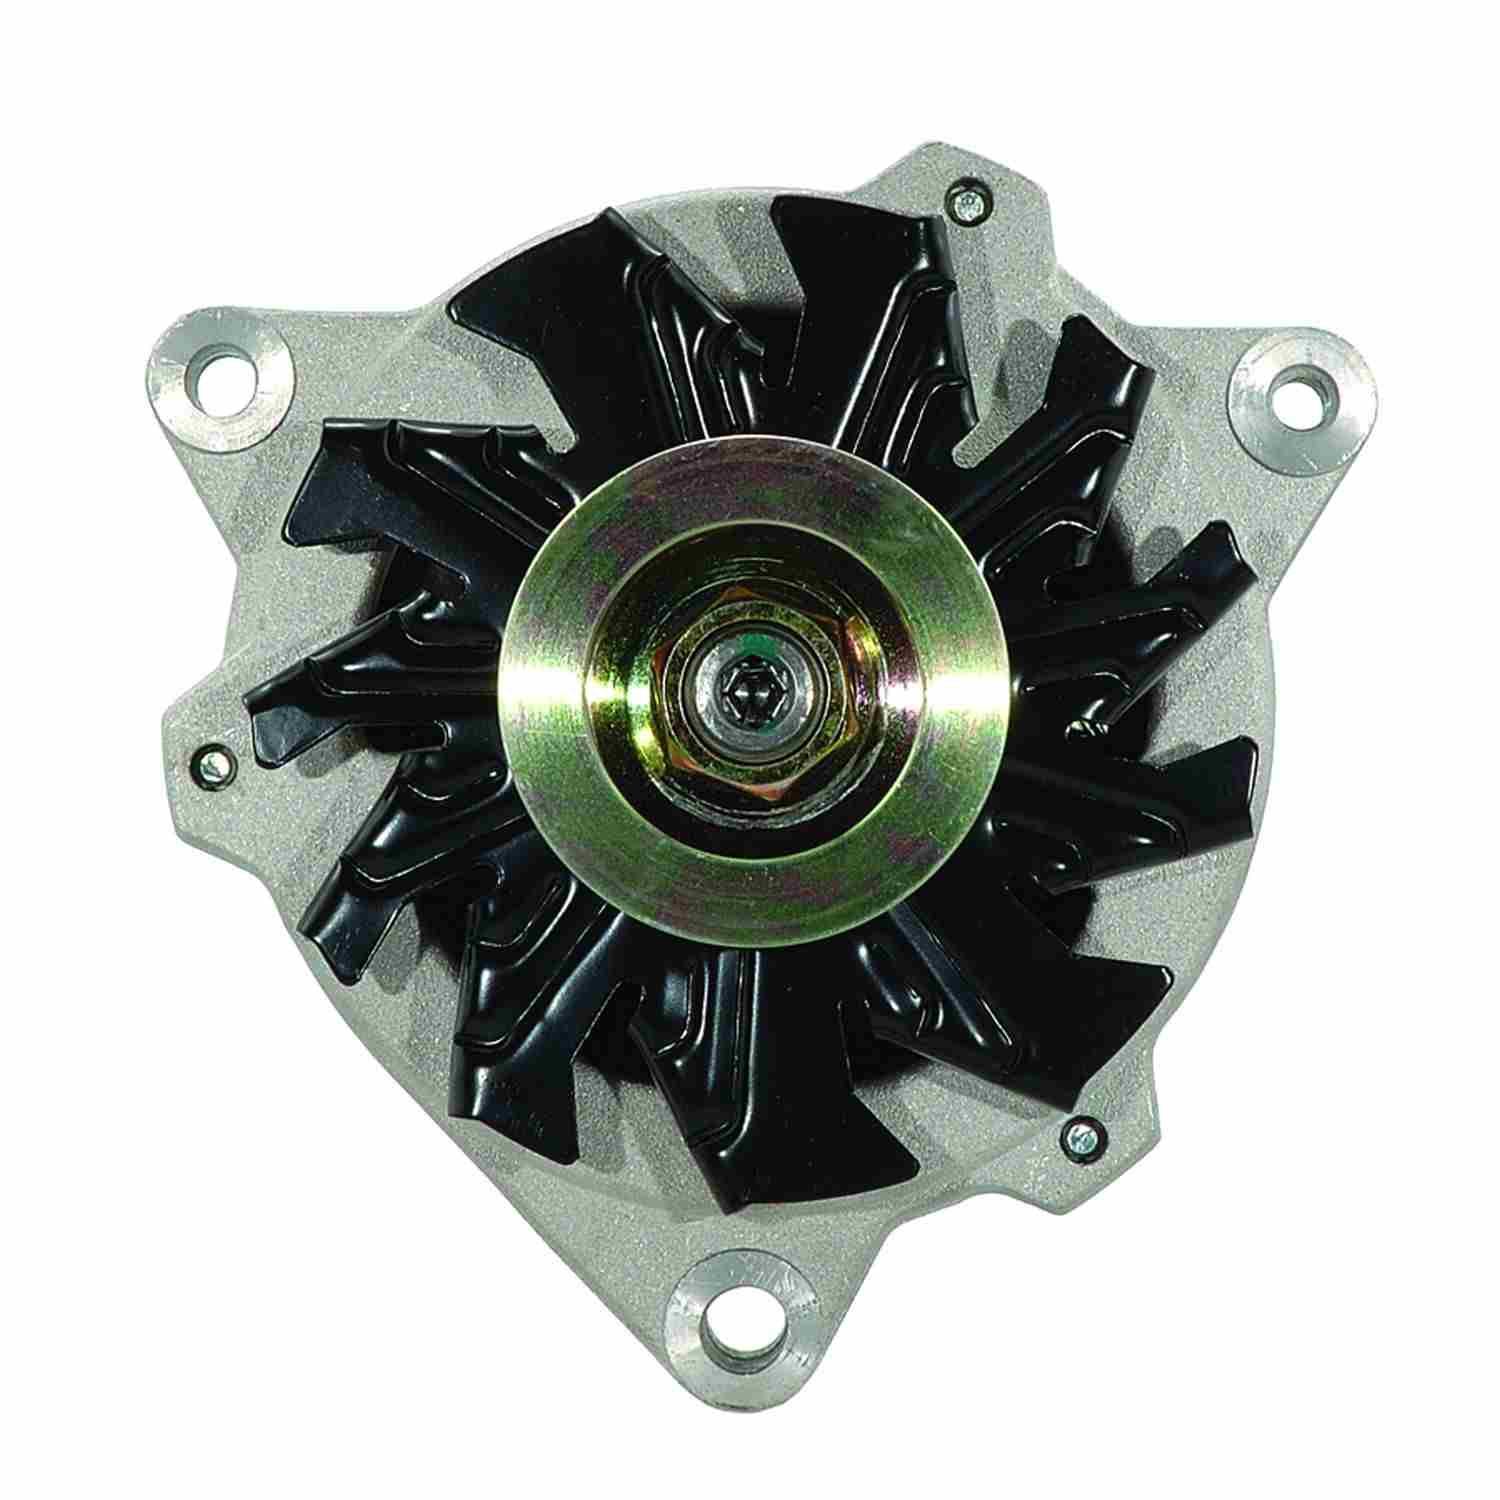 ACDELCO GOLD/PROFESSIONAL - Alternator - DCC 335-1017